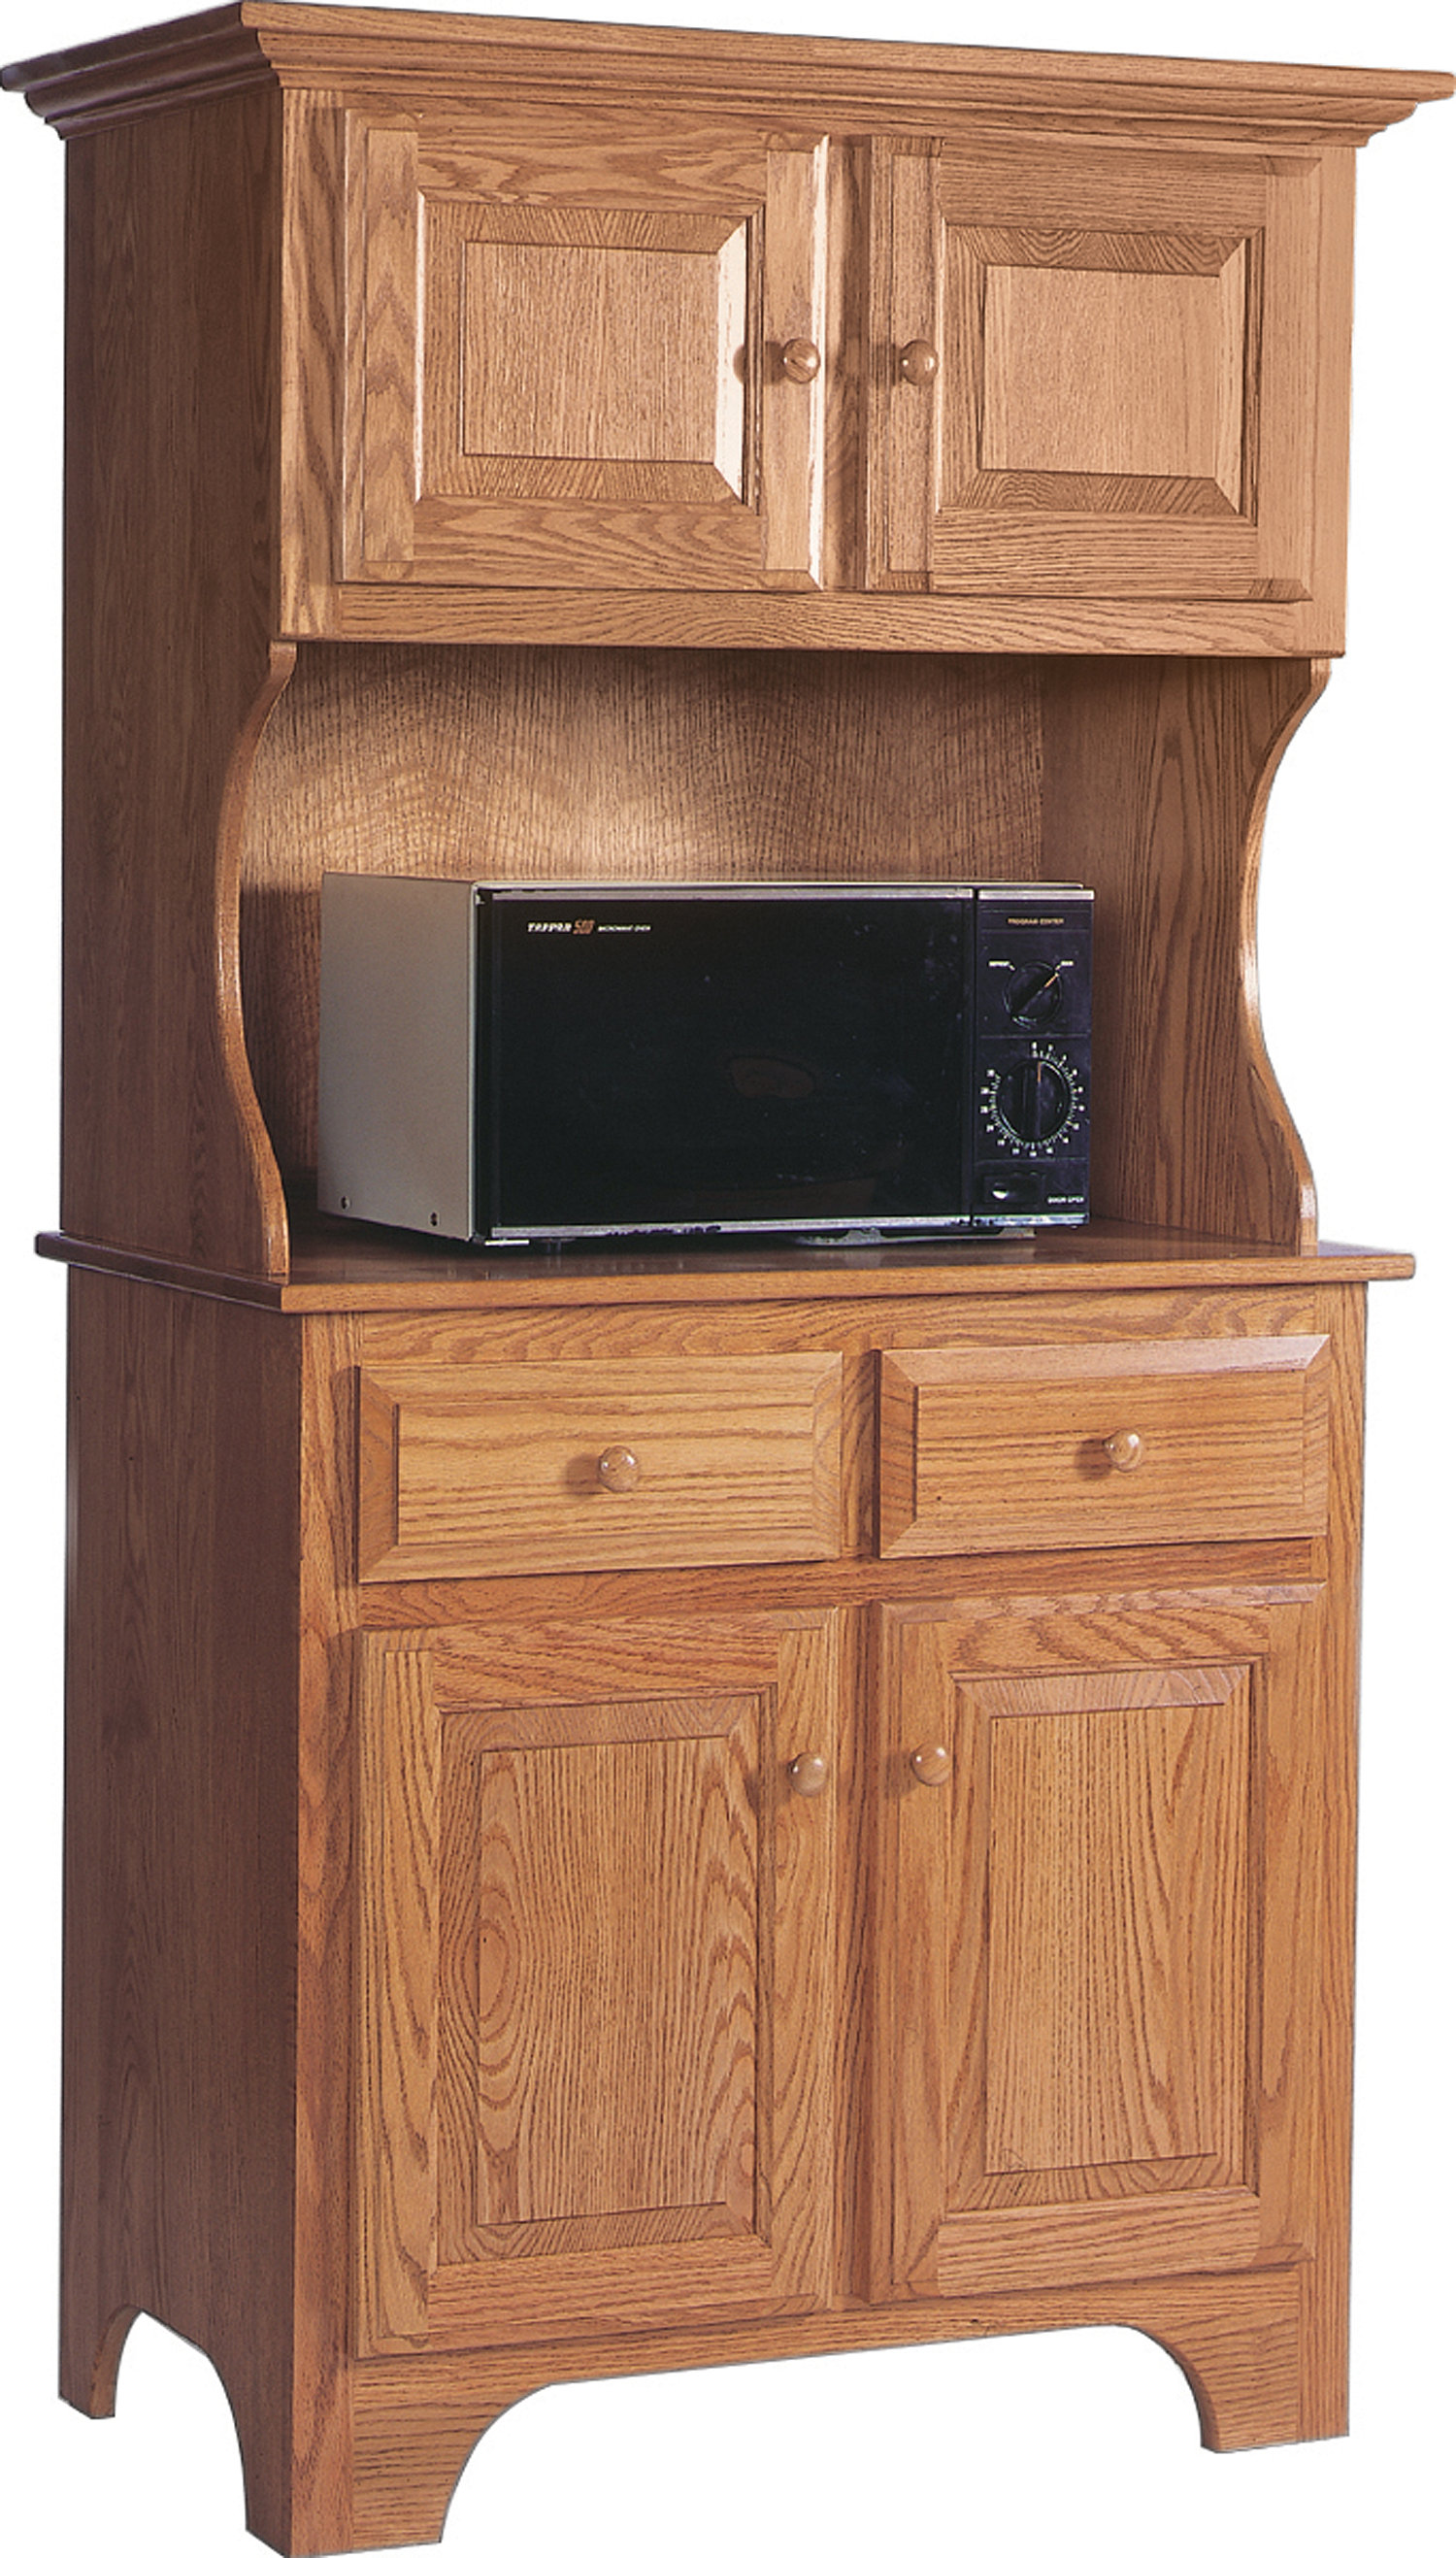 Microwave Furniture Cabinet Bears In The Woods Amish Furniture Microwave Cabinet